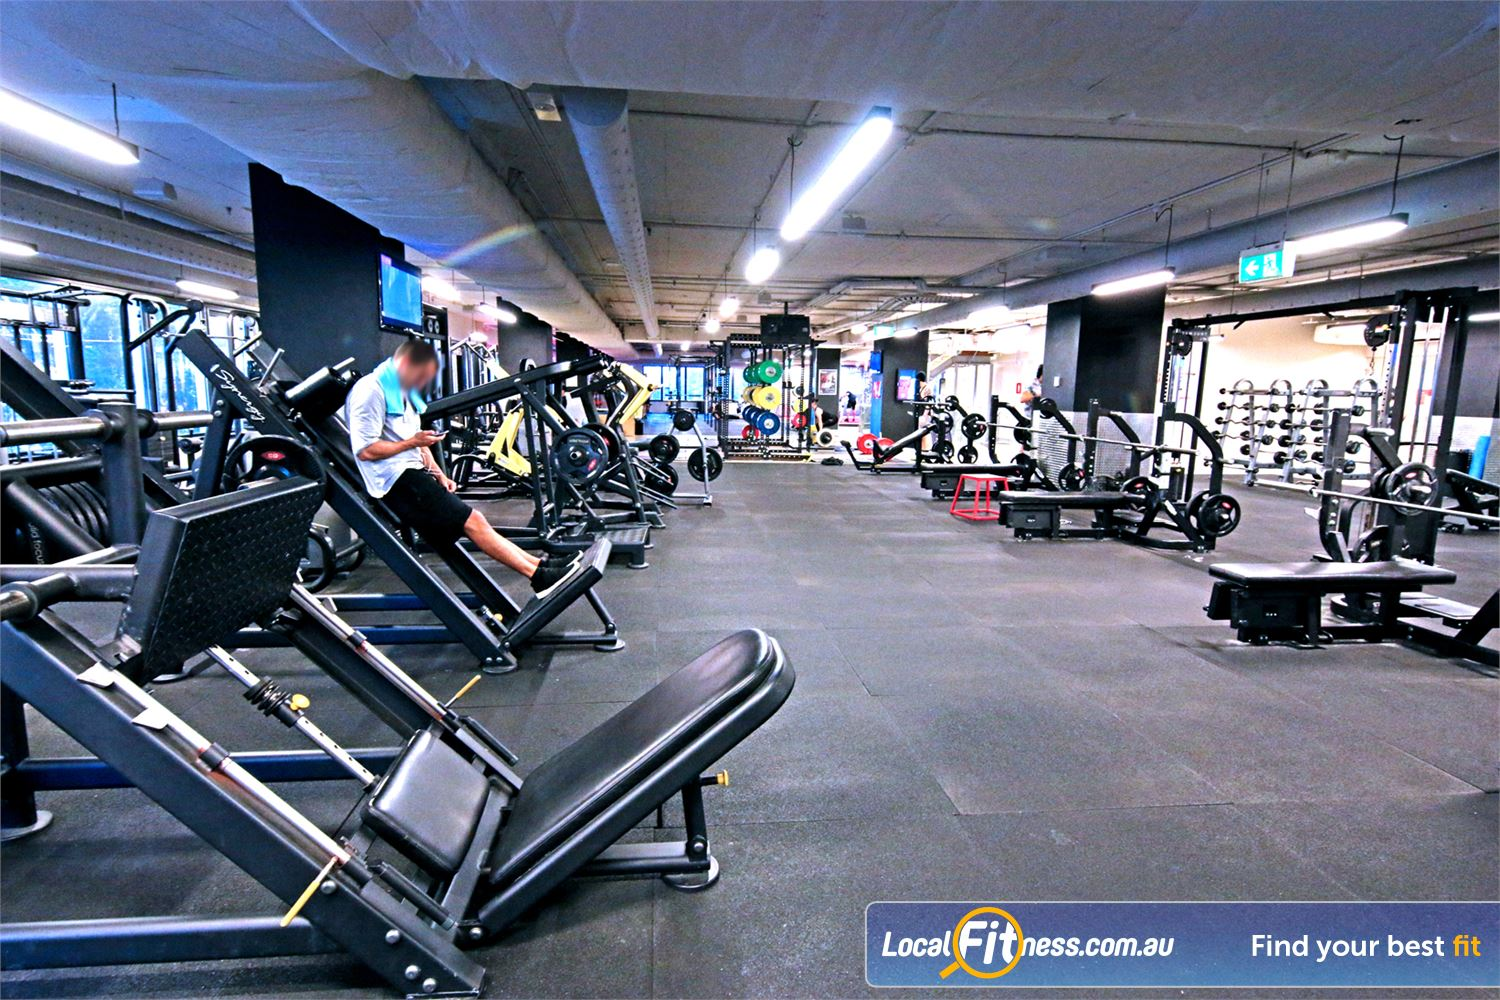 Fitness First Elizabeth St Near Spring Hill Our Brisbane gym is fully equipped for strength training.